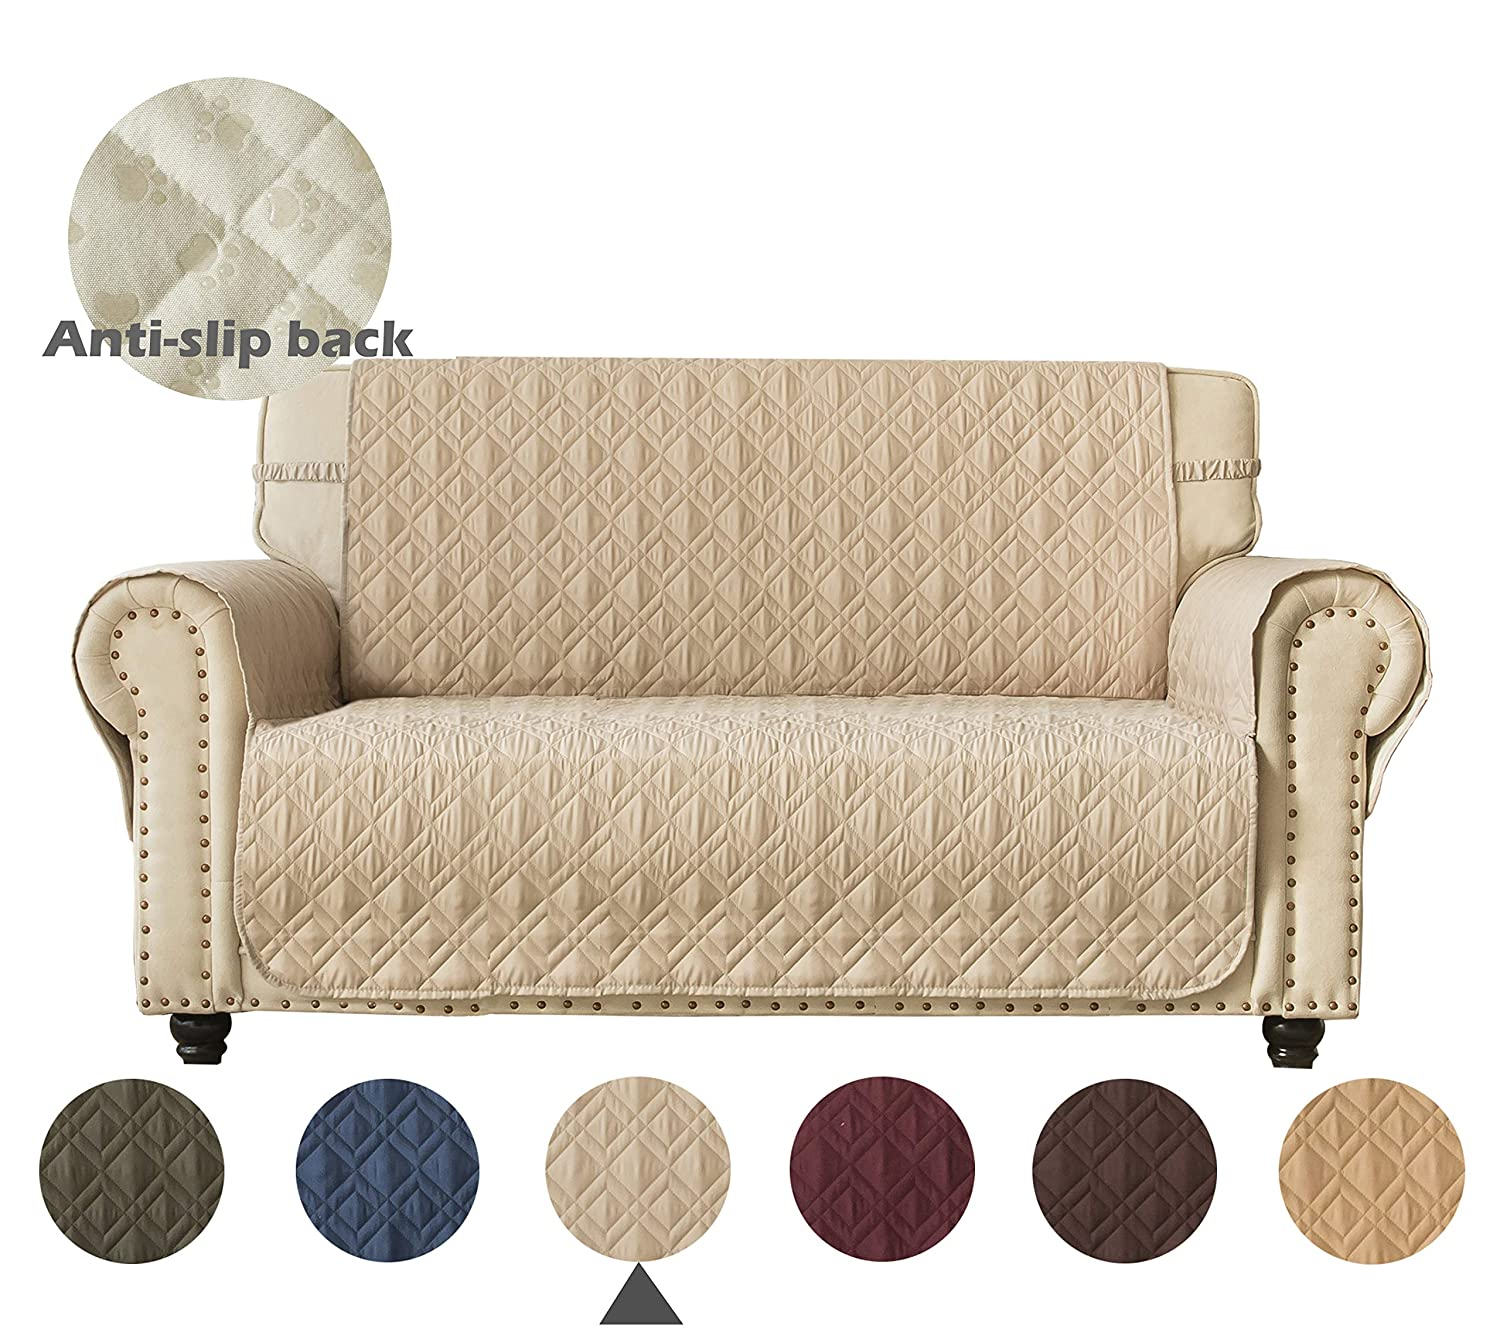 Ameritex Loveseat Cover Water-Resistant Quilted Furniture Protector with Back Nonslip Paws Slipcover for Dogs, Kids, Pets Loveseat Slipcover Stay in Place (Pattern1:Beige, Loveseat(Oversized))